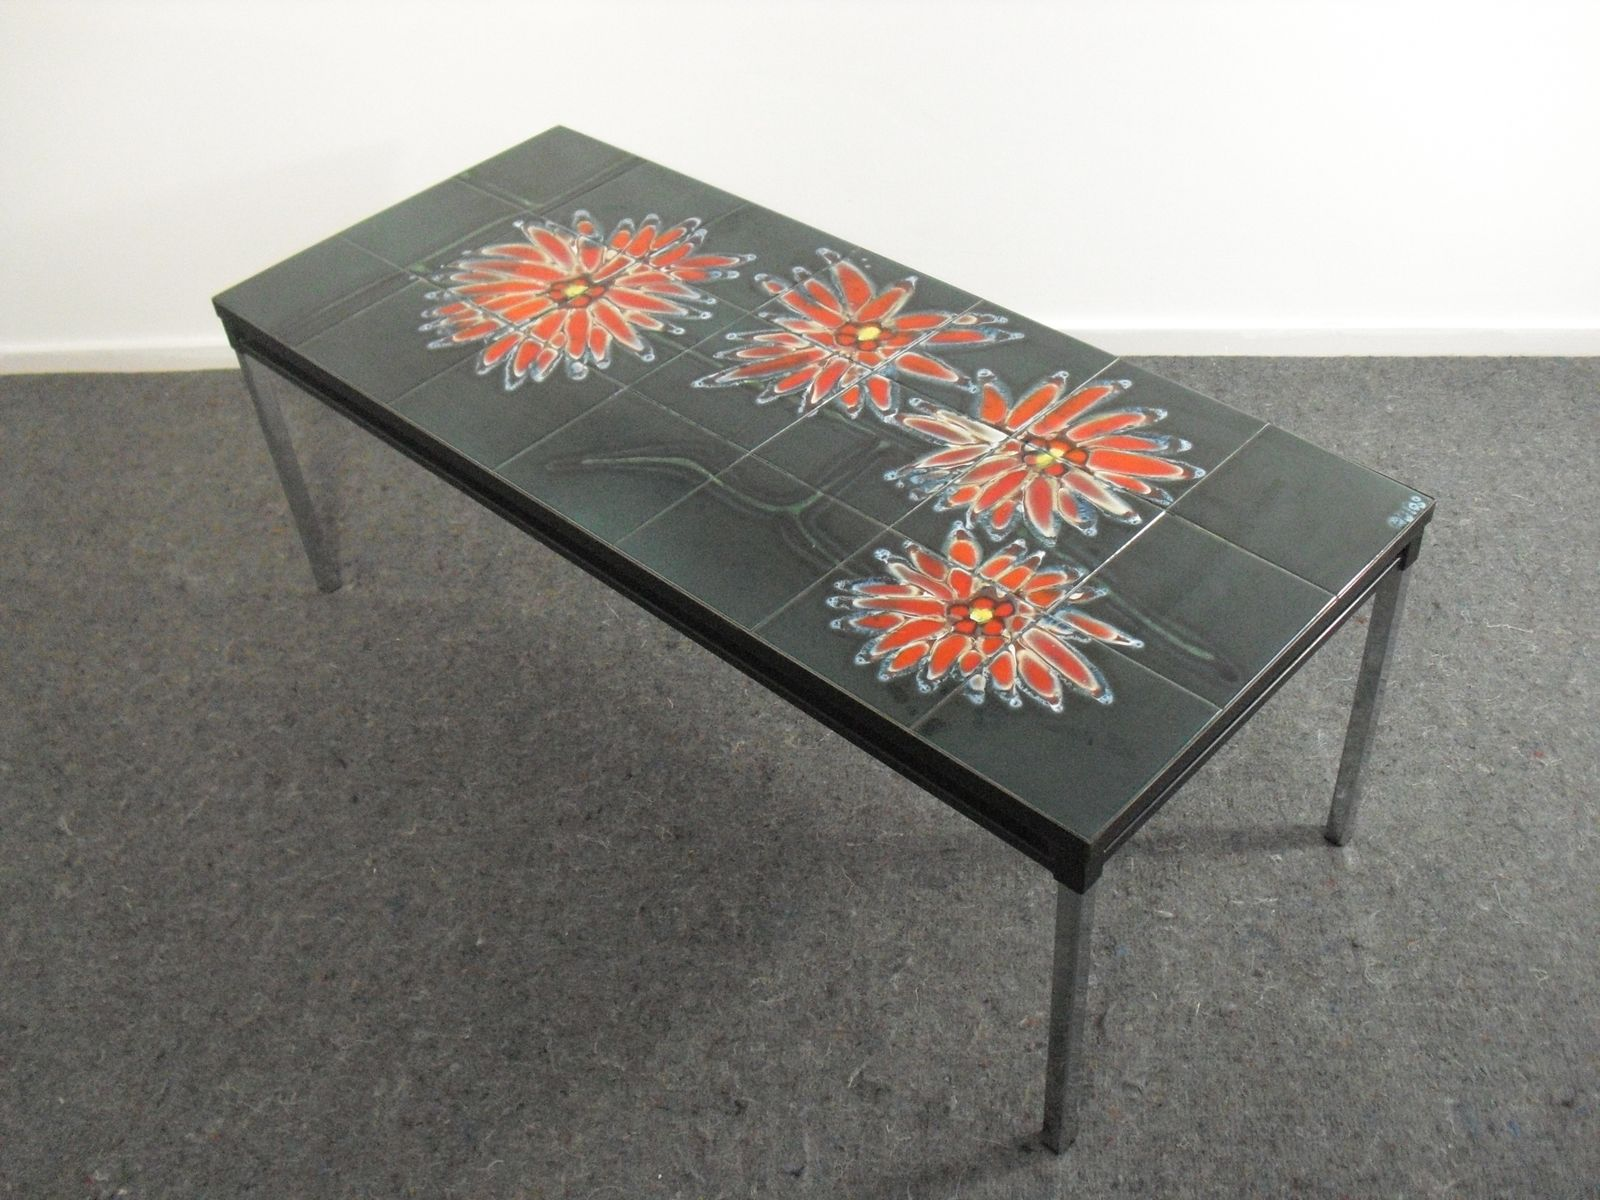 Vintage Ceramic Tile Coffee Table By Adri 1960s For Sale At Pamono